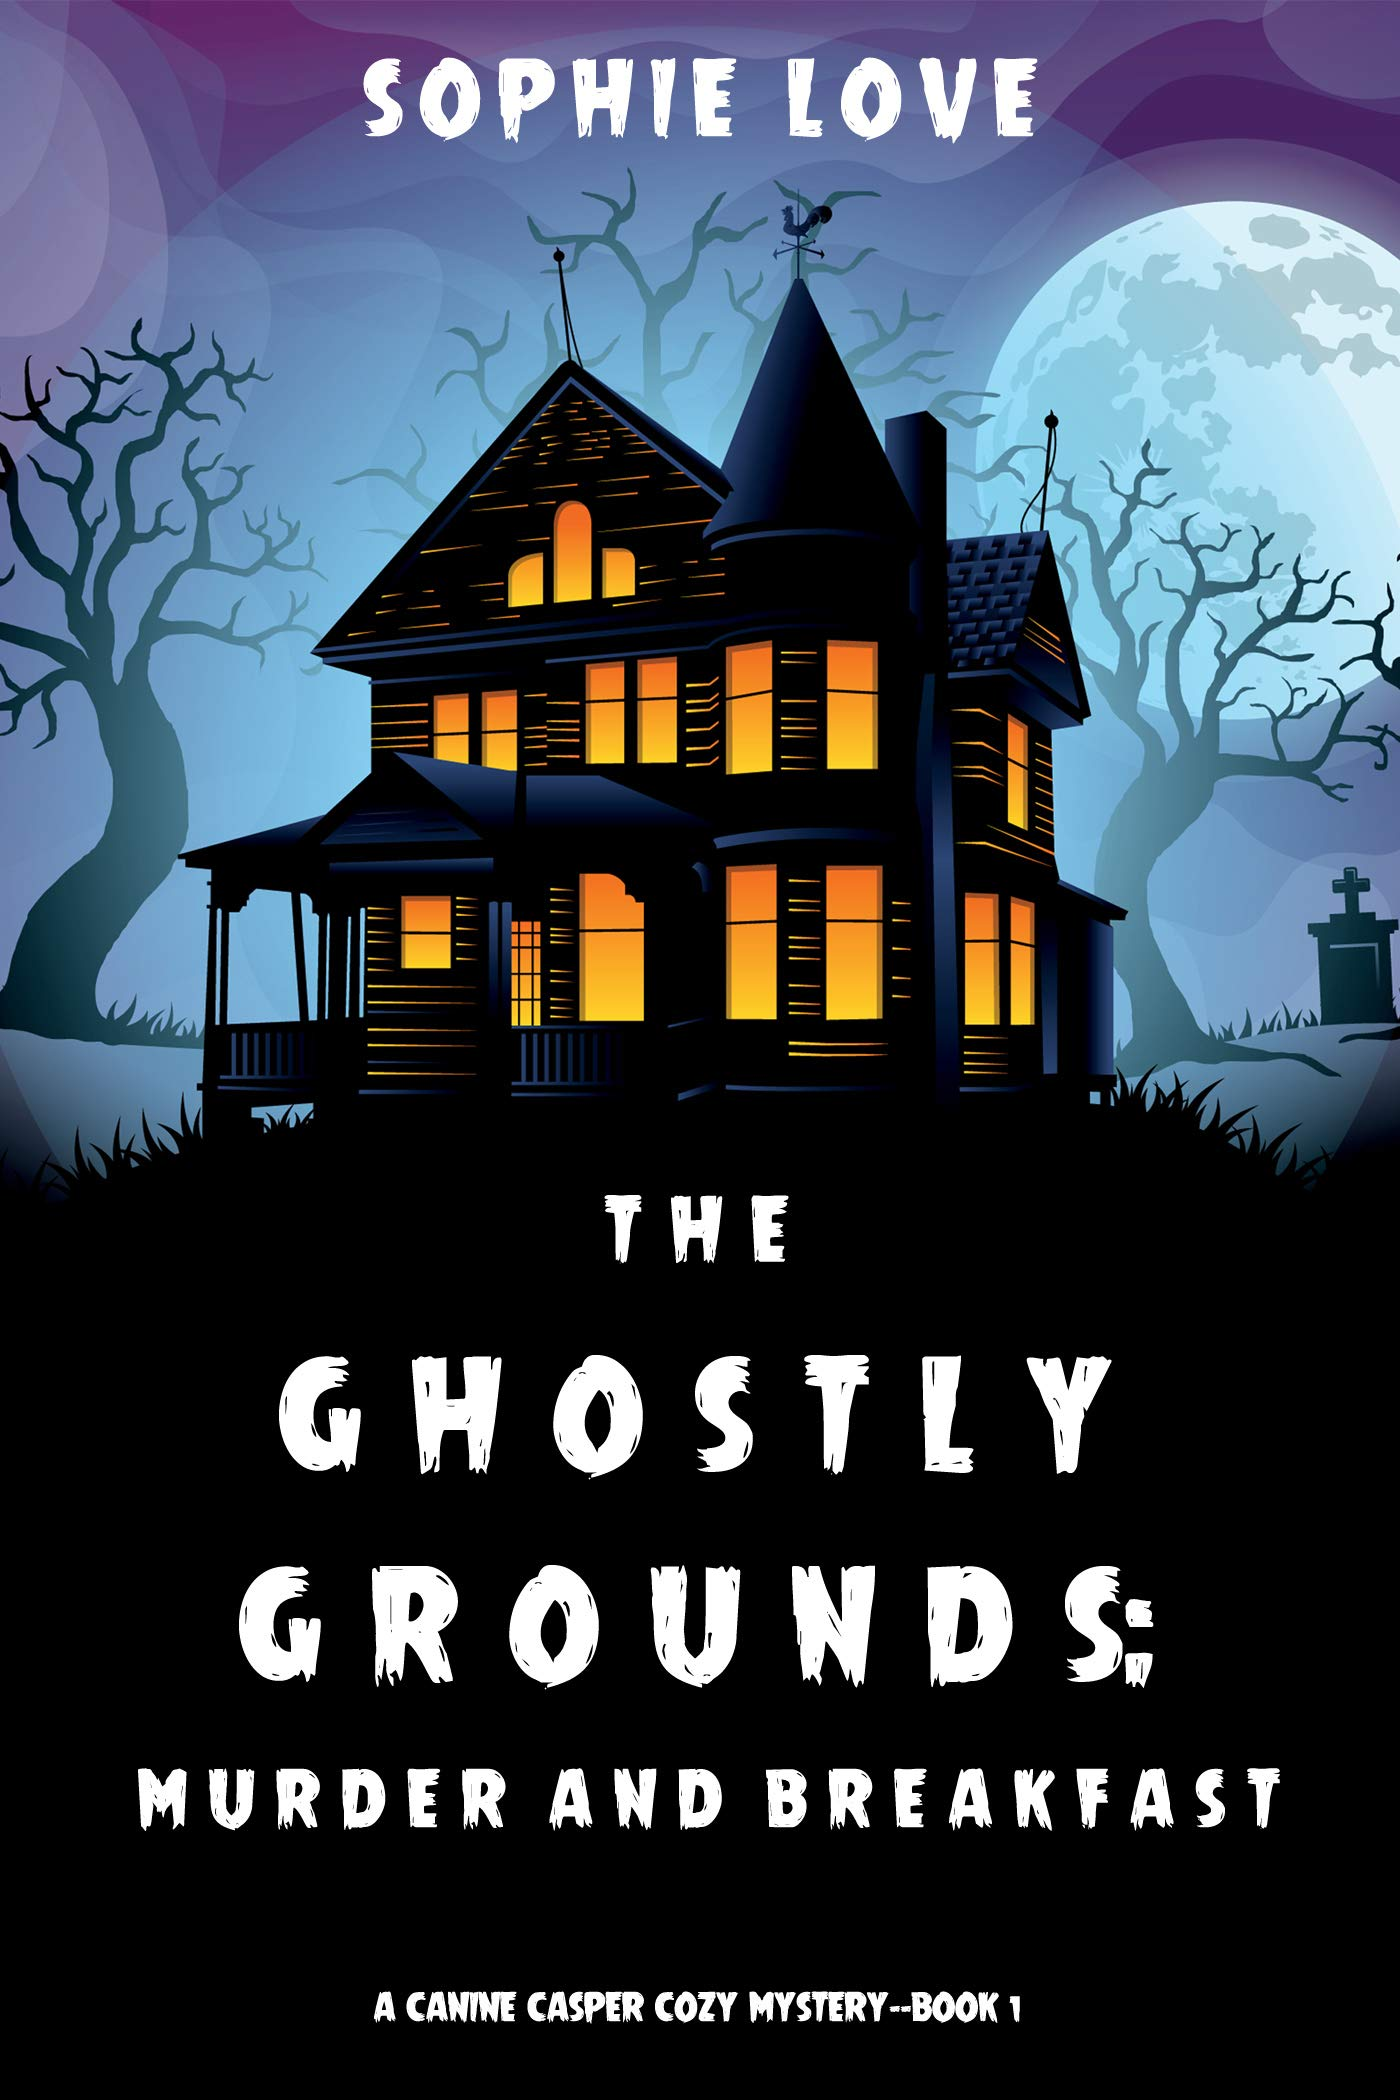 The Ghostly Grounds: Murder and Breakfast (Canine Casper Cozy Mystery #1)